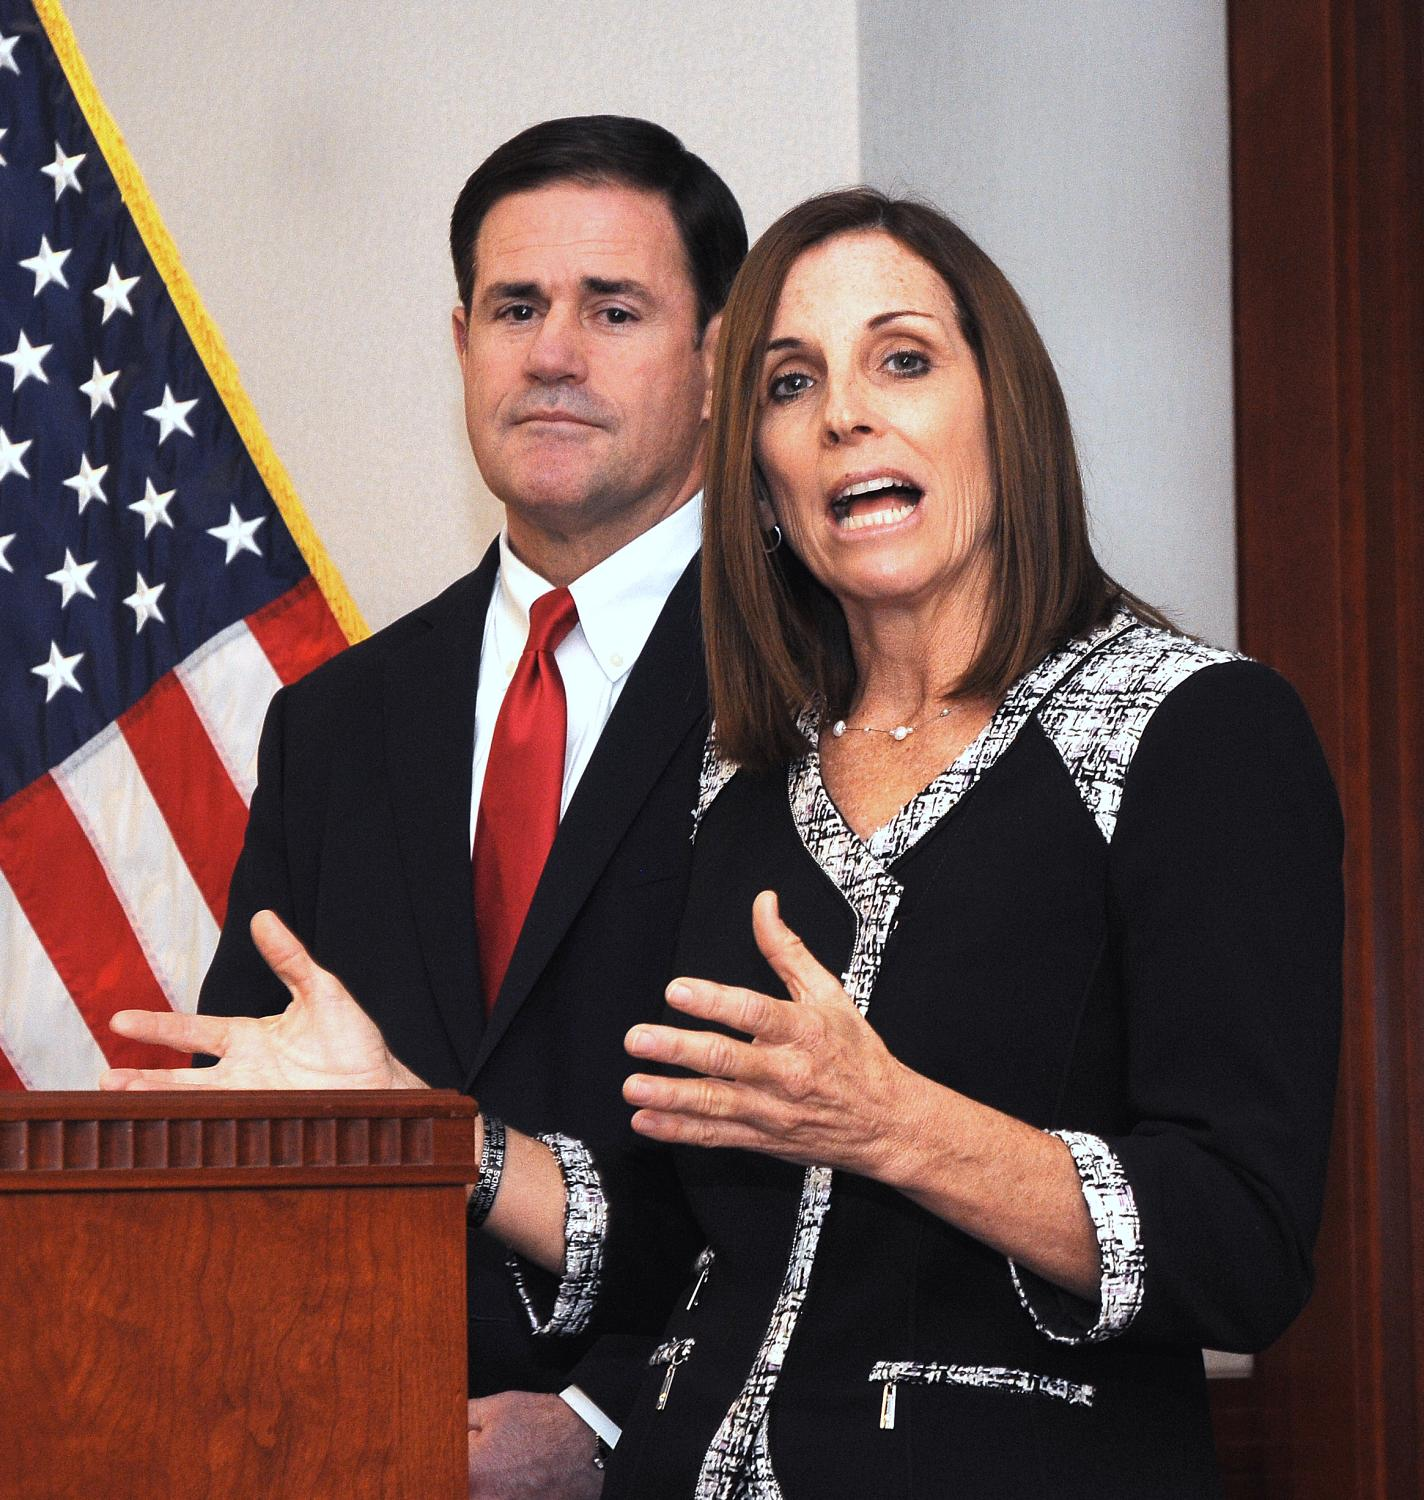 Martha McSally answers questions Tuesday on the heels of Gov. Doug Ducey appointing her to the U.S. Senate